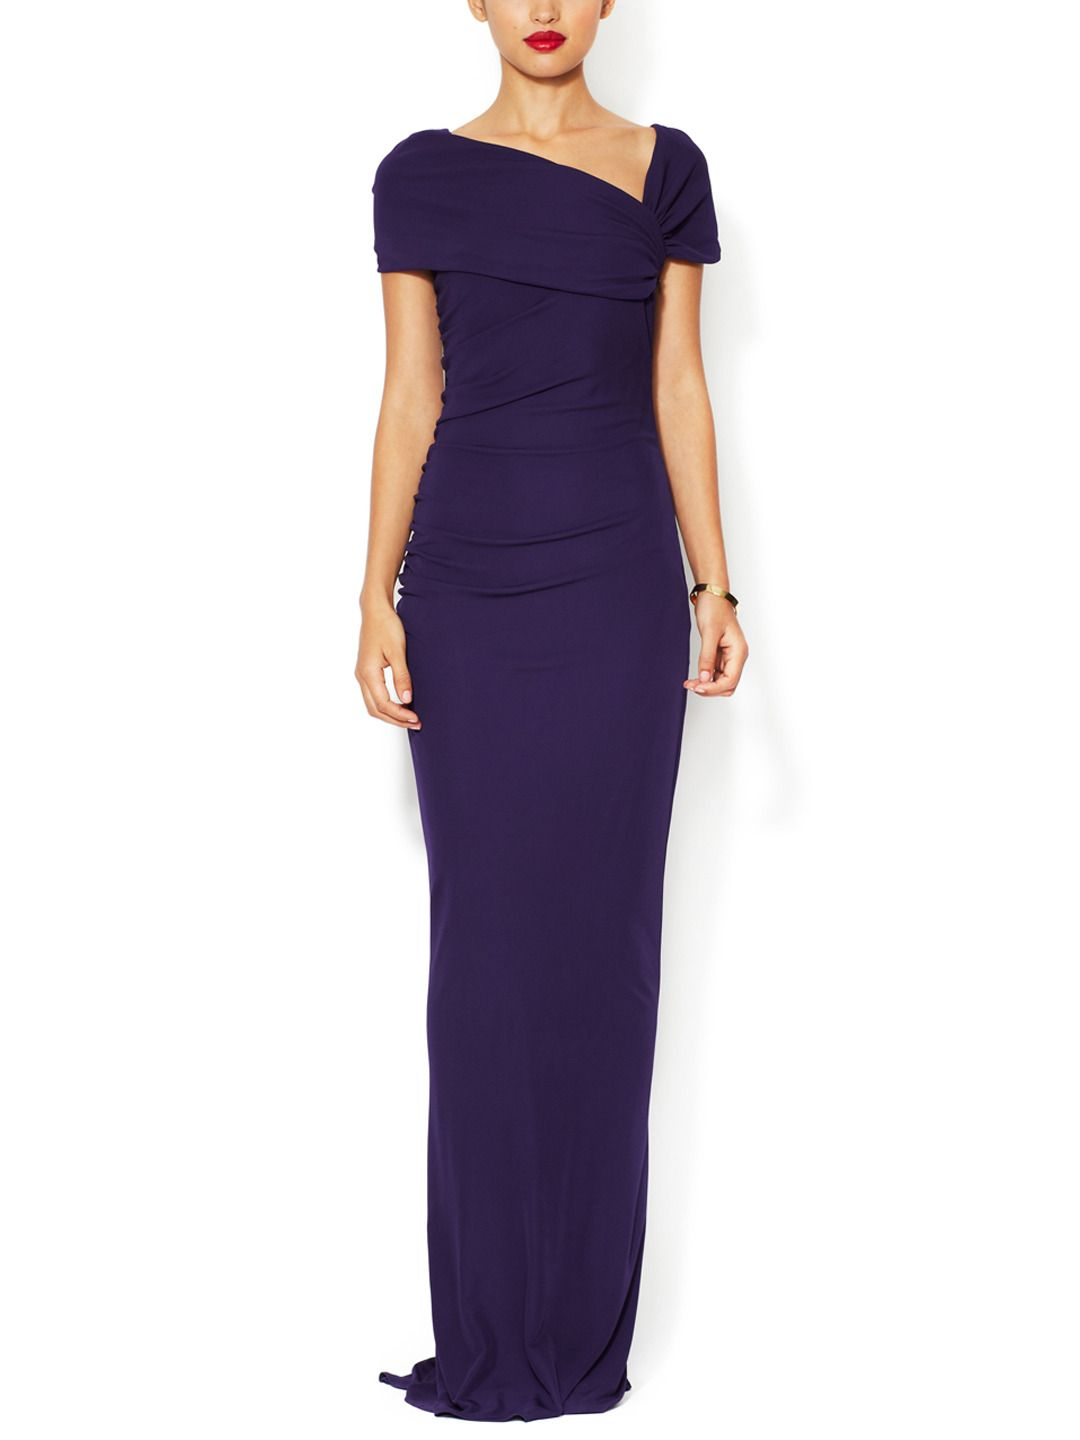 Jersey Asymmetrical Portrait Collar Gown by Badgley Mischka at Gilt